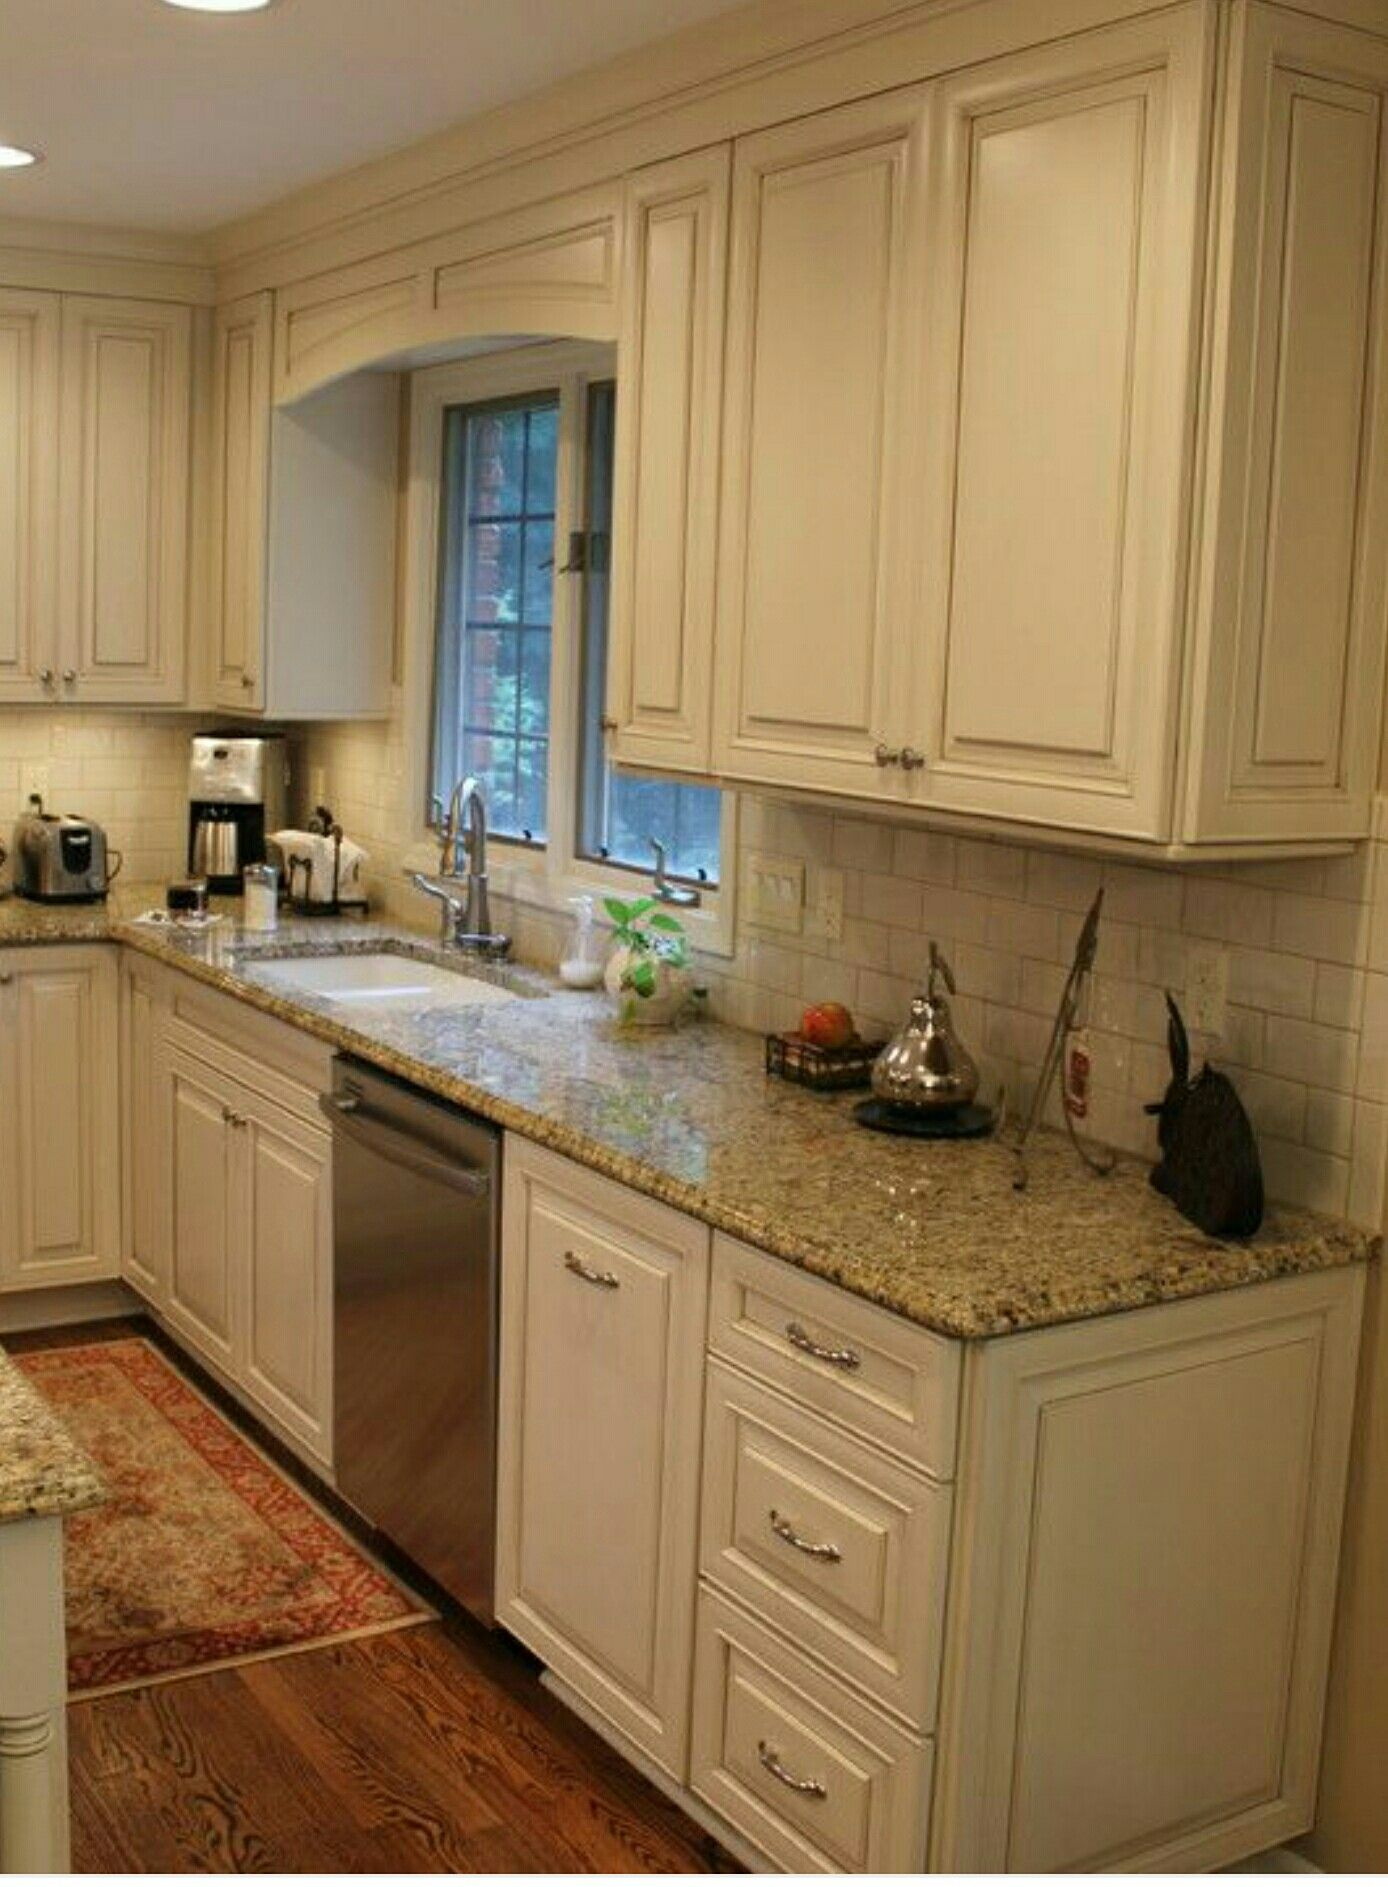 Kitchen Cabinets And Countertops Restoration Hardware Table White Subway Tile Beige Granite